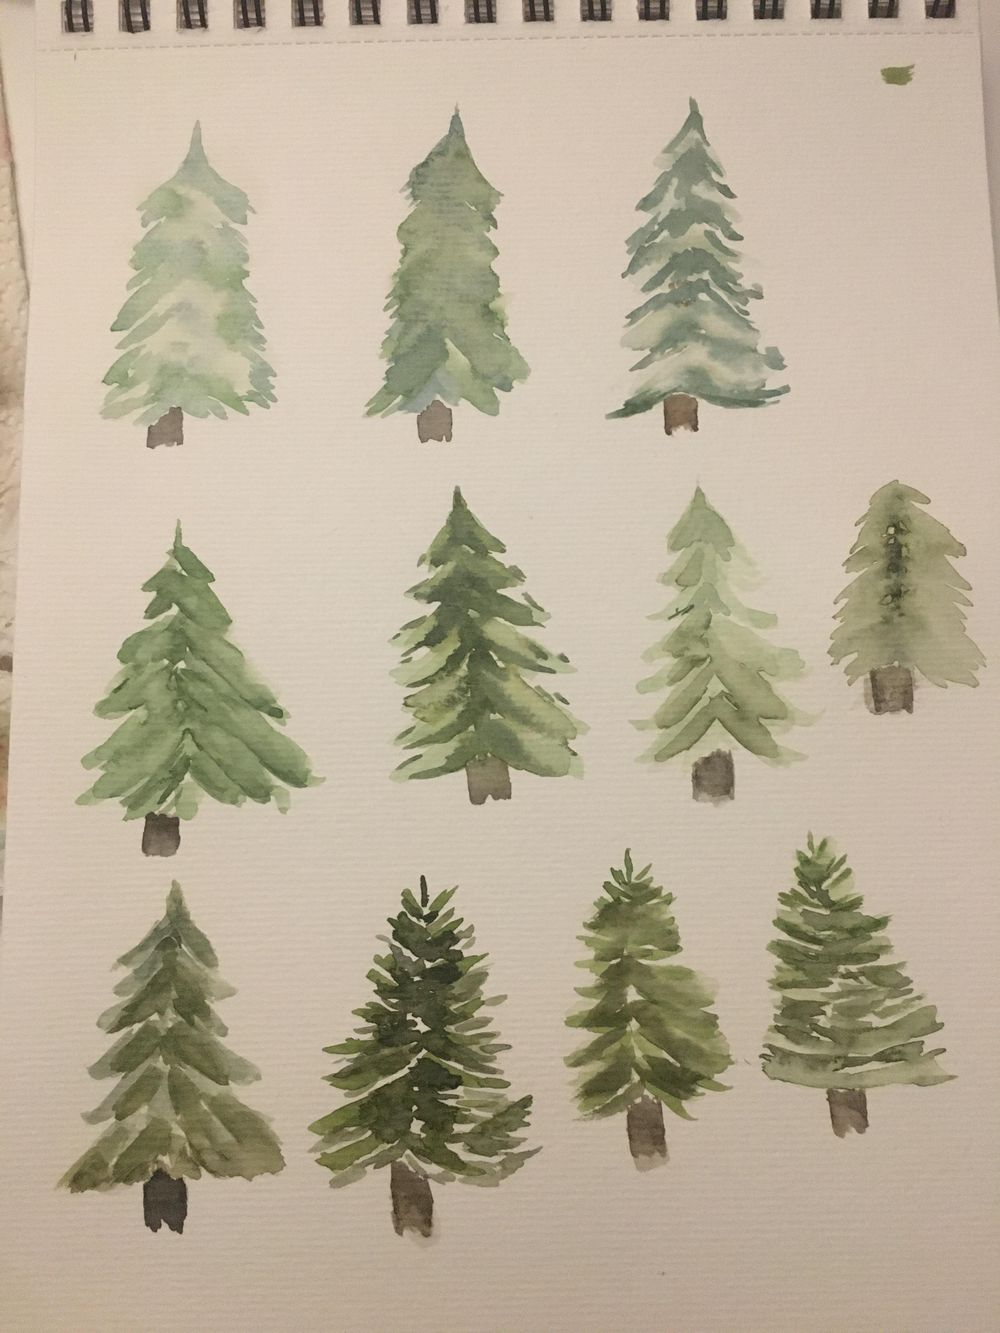 Christmas trees - image 1 - student project